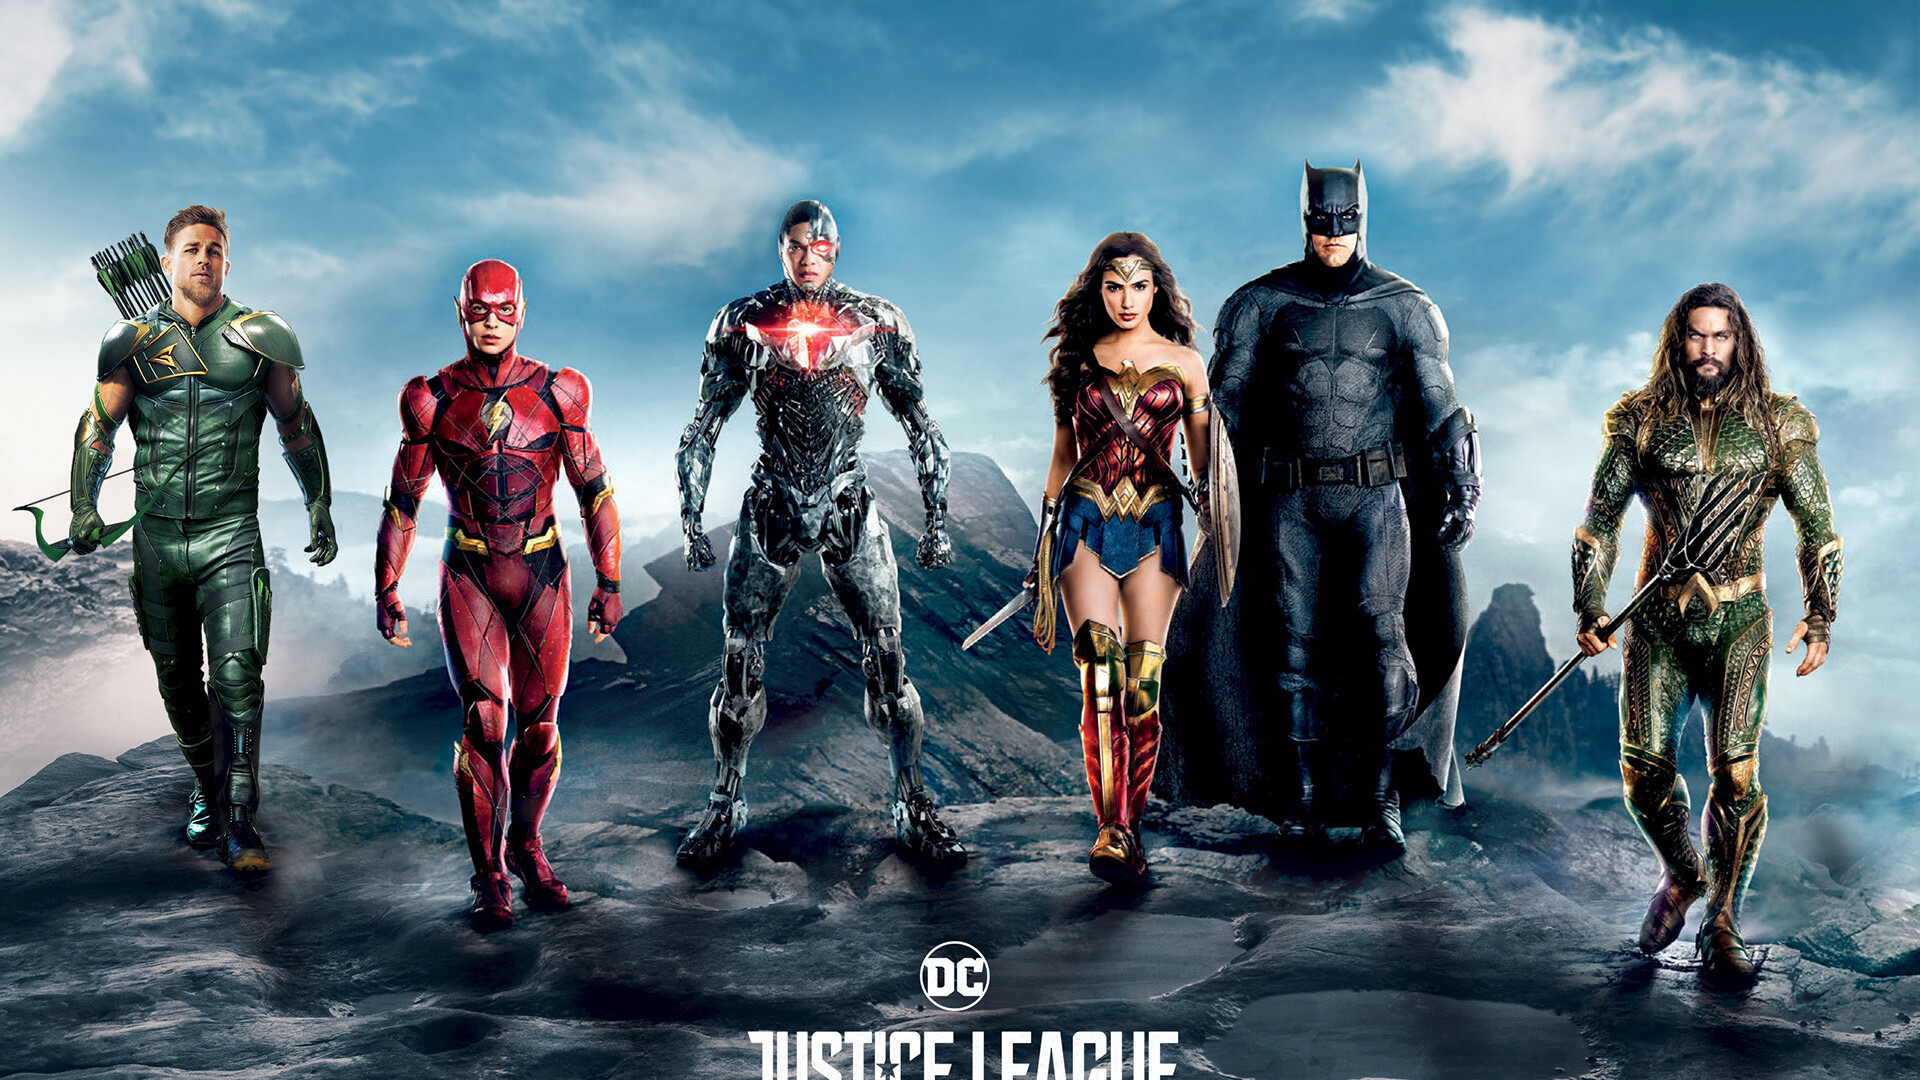 1920x1080 2017 justice league laptop full hd 1080p hd 4k wallpapers